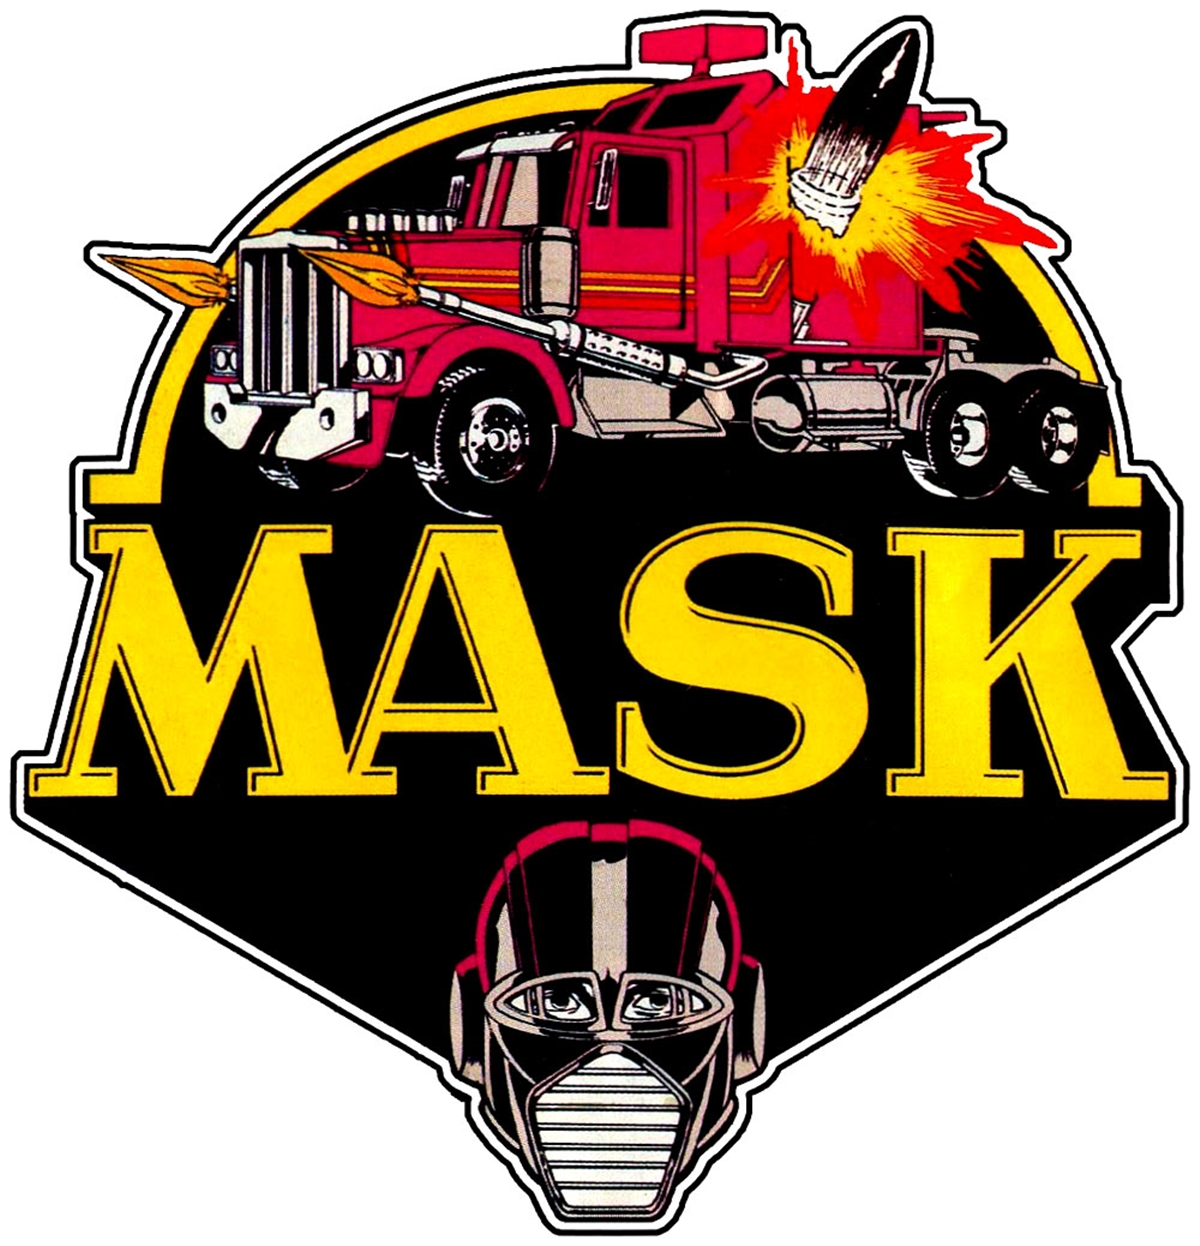 4 21 This Is The News M.A.S.K. Fans Have Been Waiting 30 Years For!